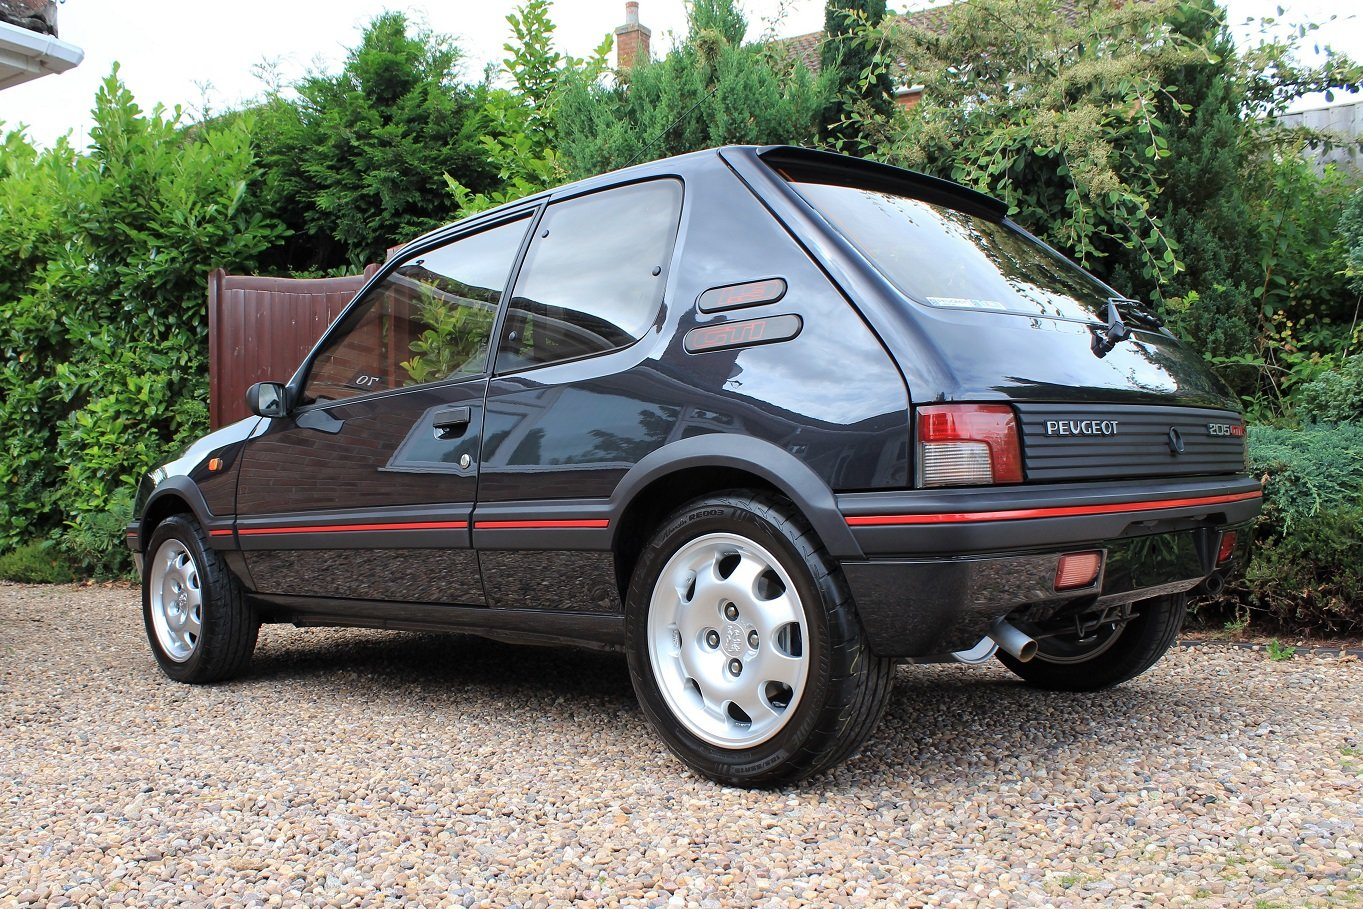 1991 Peugeot 205 GTI 3dr,65,534 miles from new For Sale (picture 2 of 6)